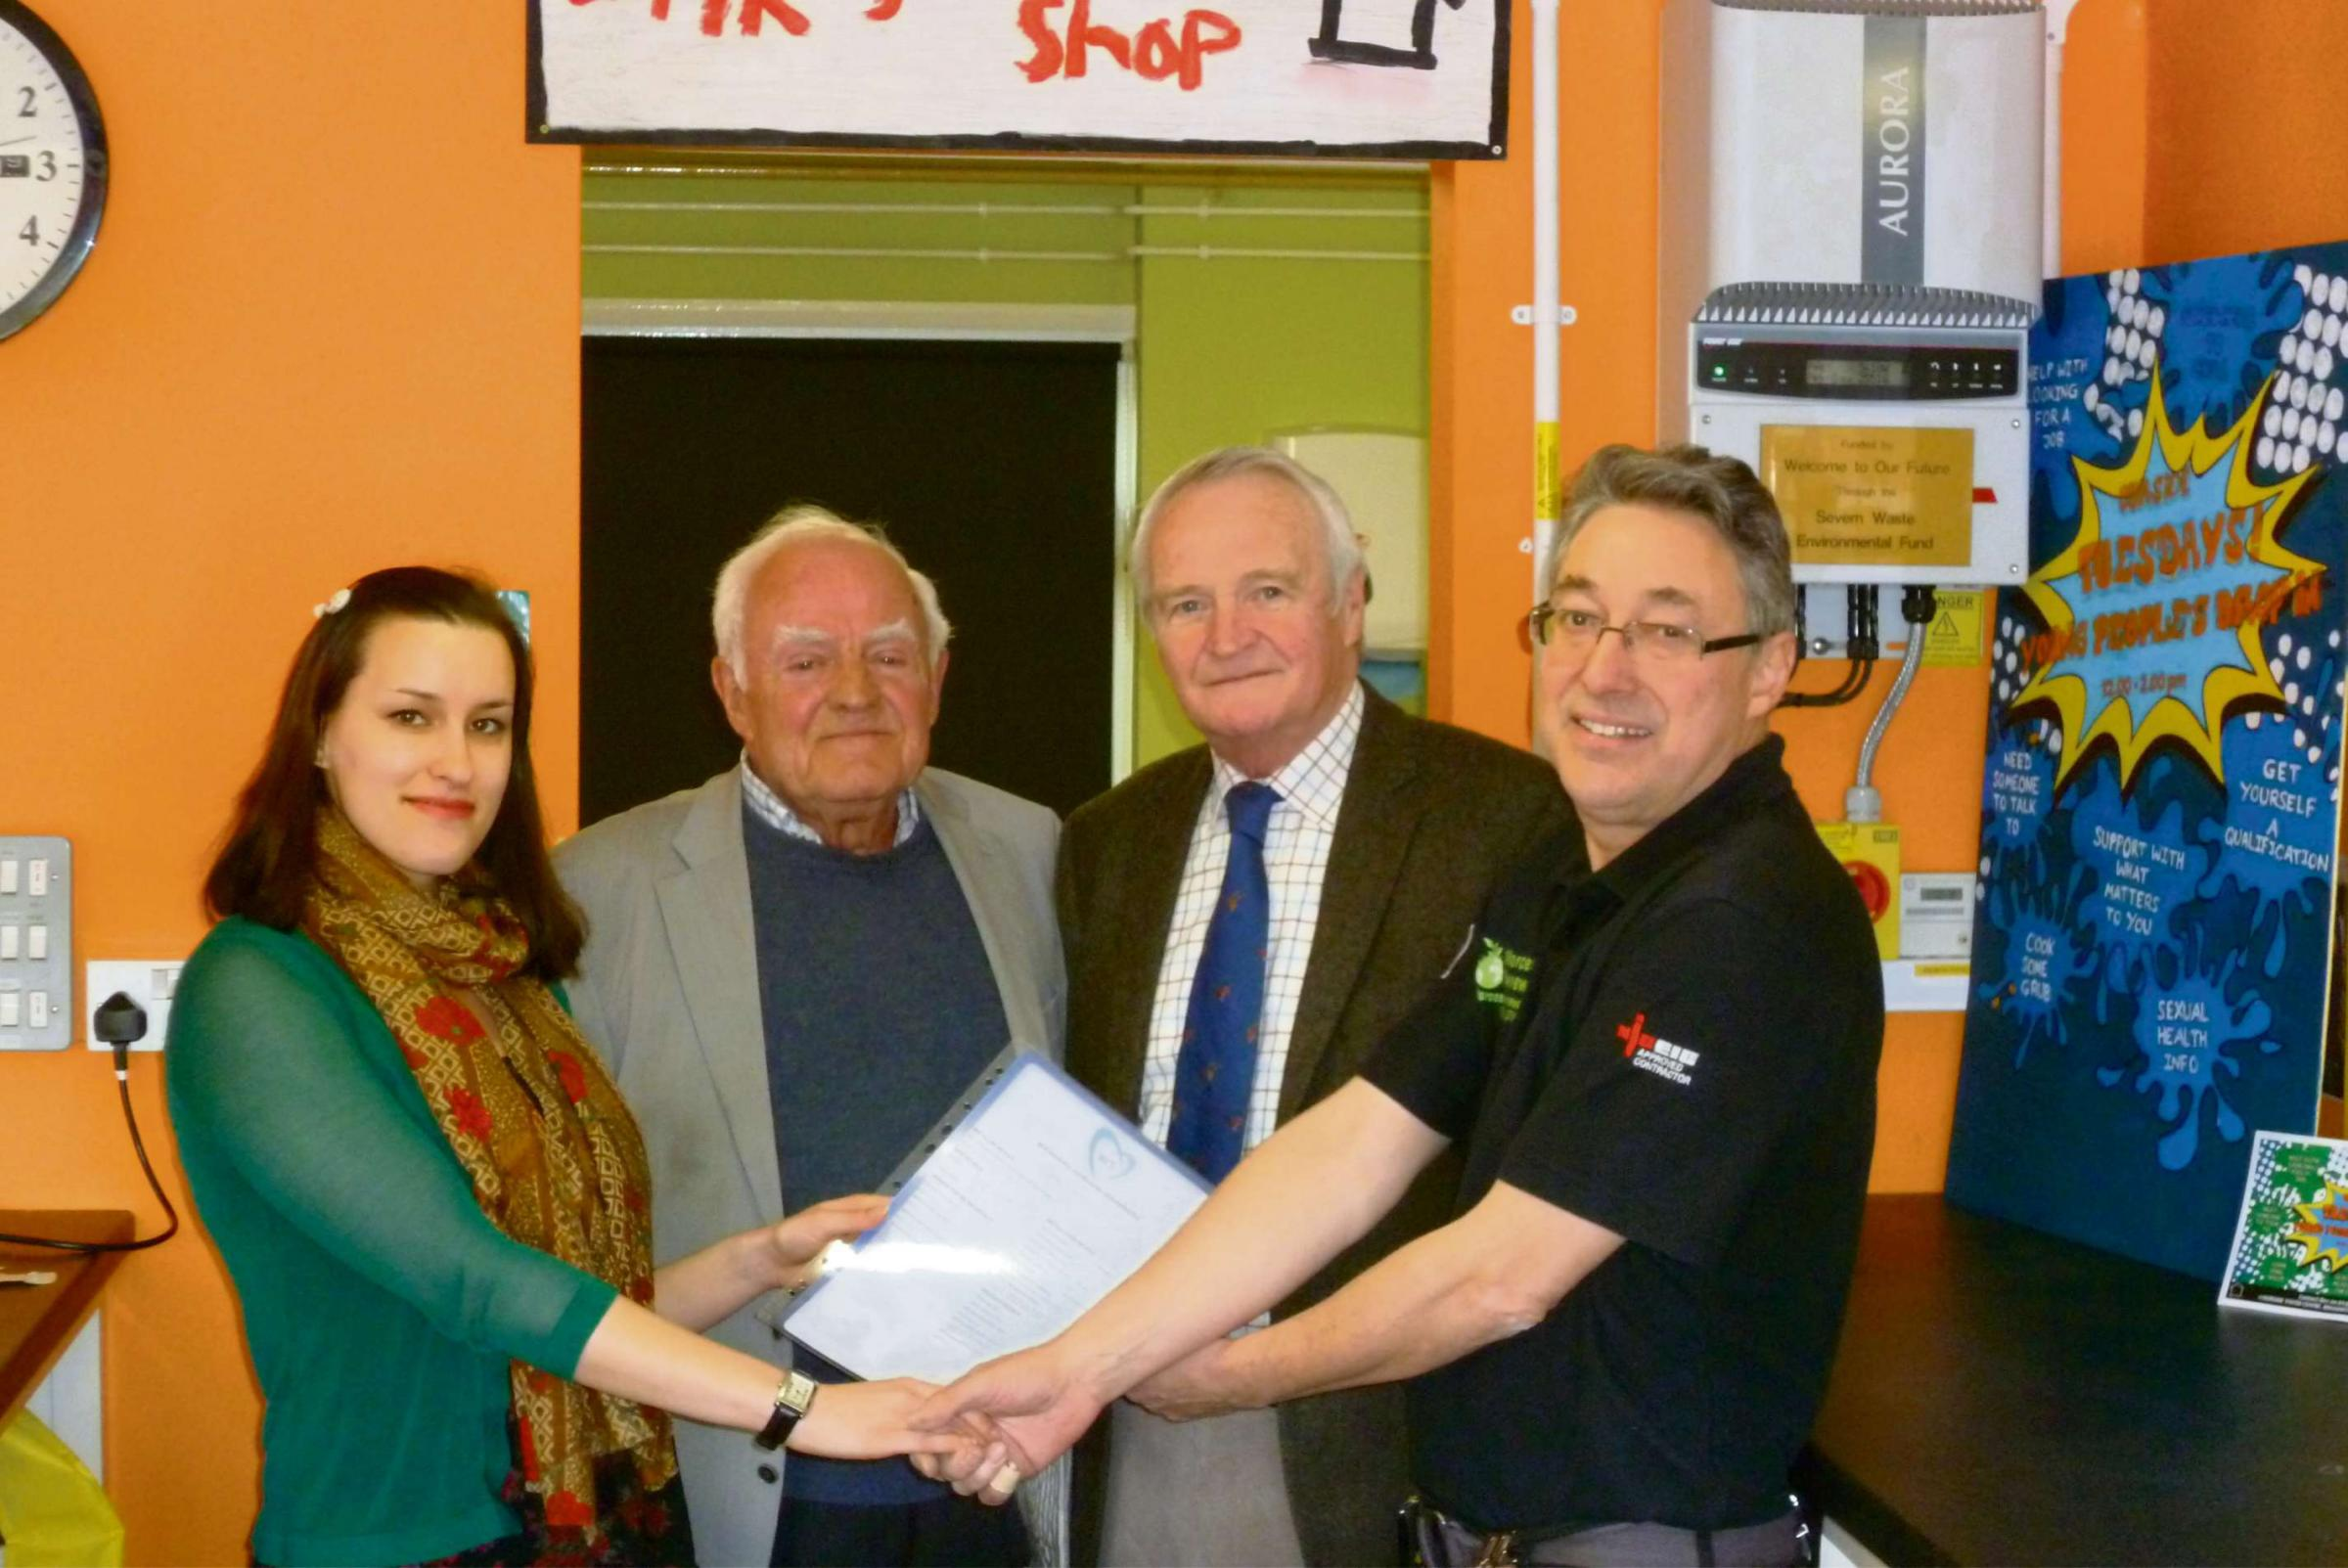 Kirsty Elwell, from Ourside Youth Centre with Councillors Clive Holt and Bob Banks, who donated the money and Gordon Bunker.